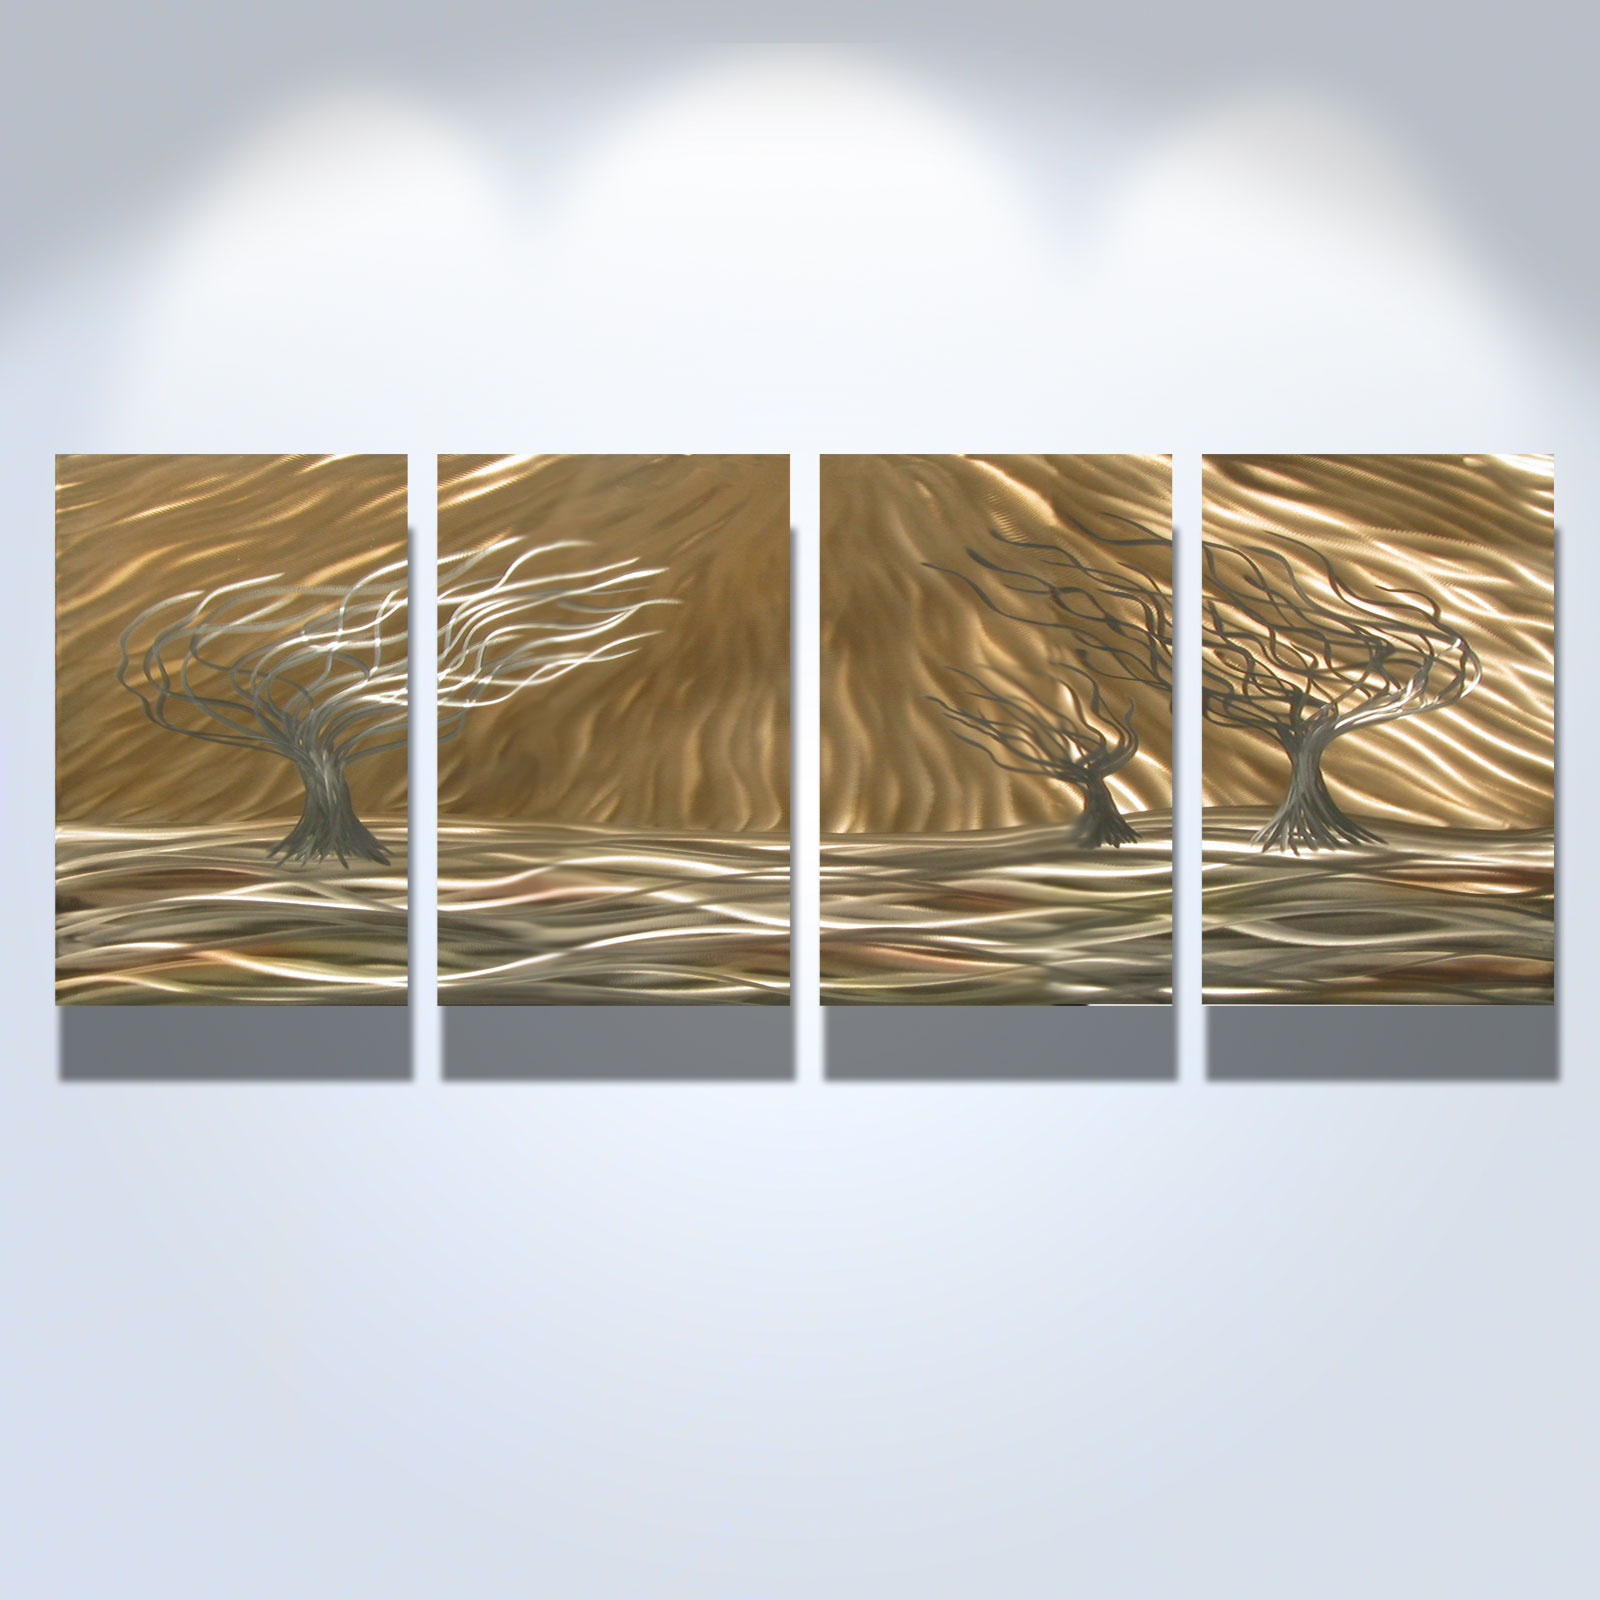 3 trees 4 panel abstract metal wall art contemporary for Contemporary decorative accessories